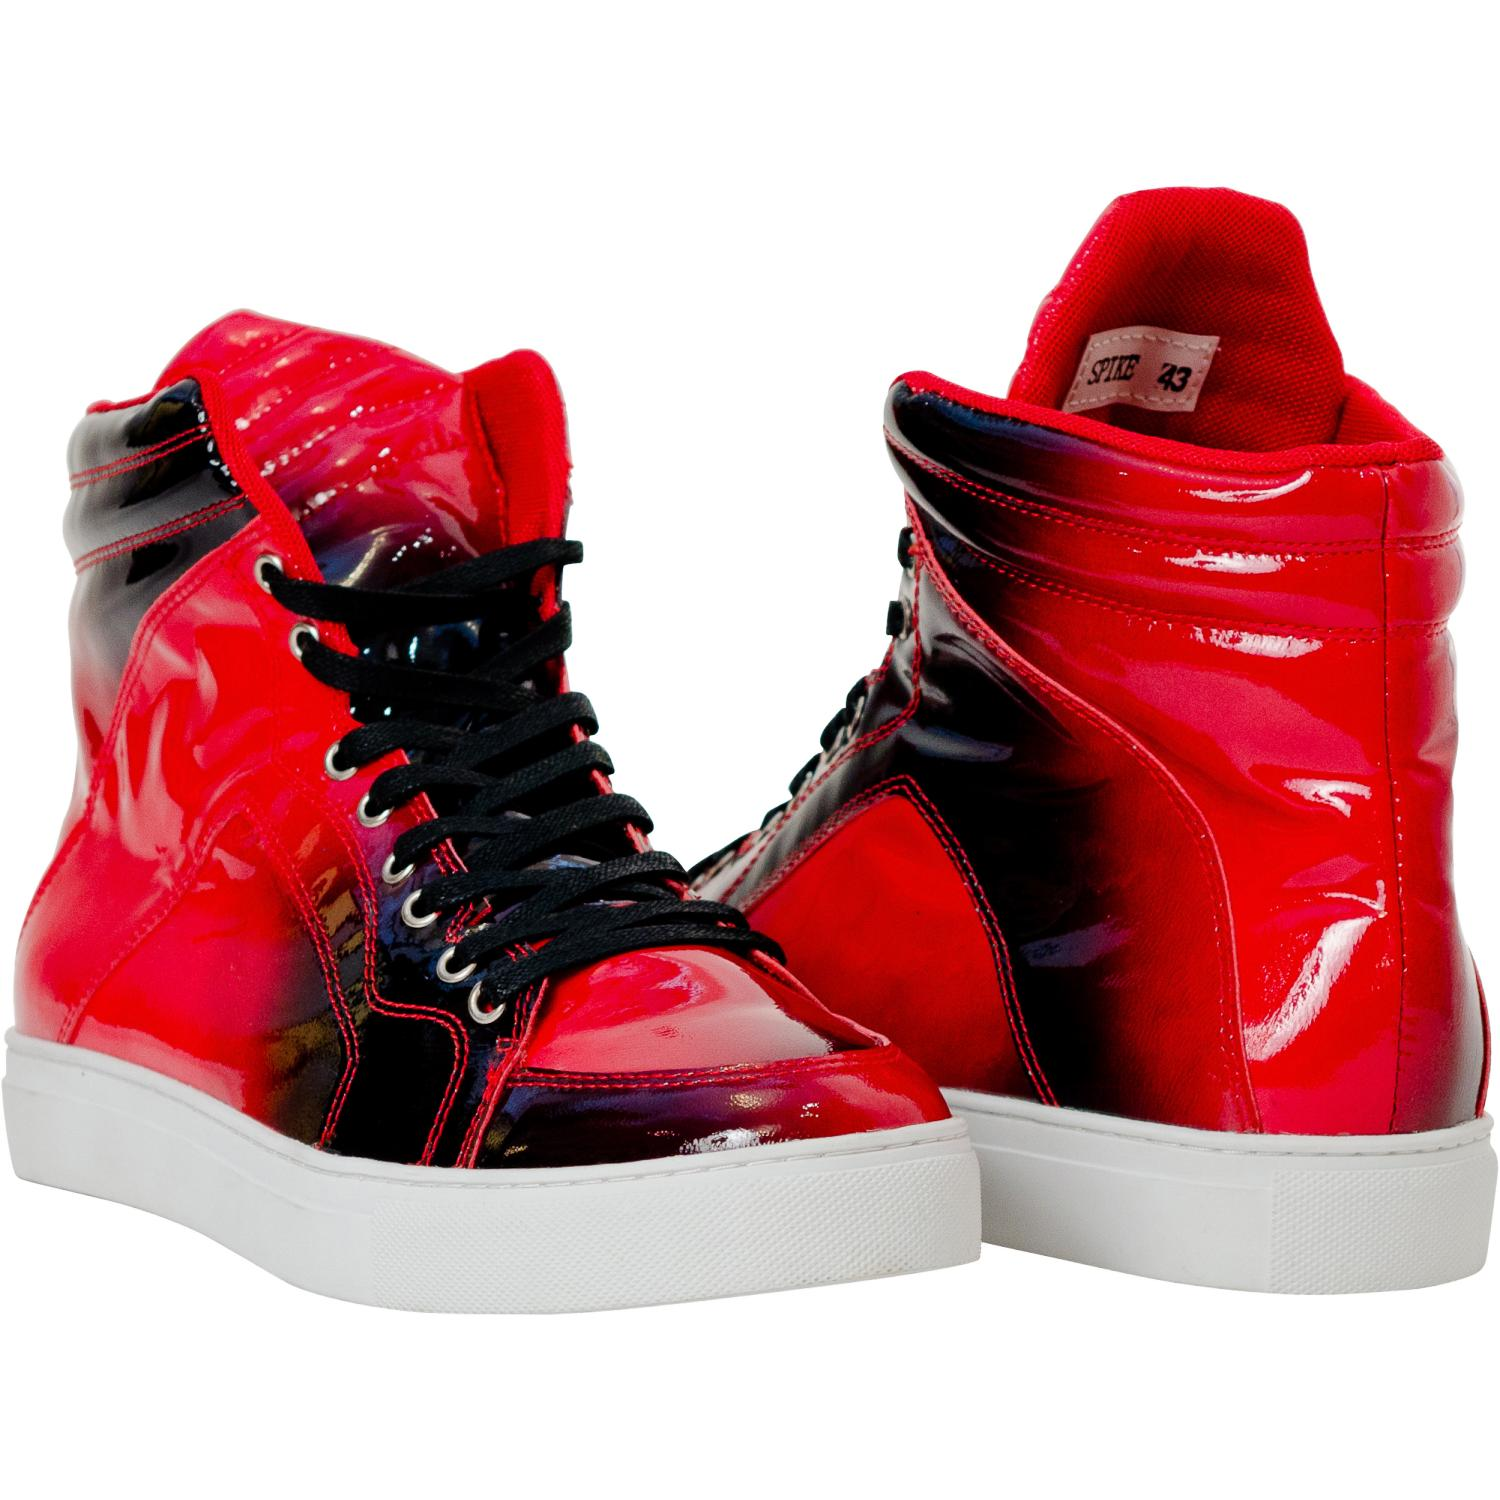 Spike Fire Red Patent Leather High Top Sneakers  Paolo Shoes